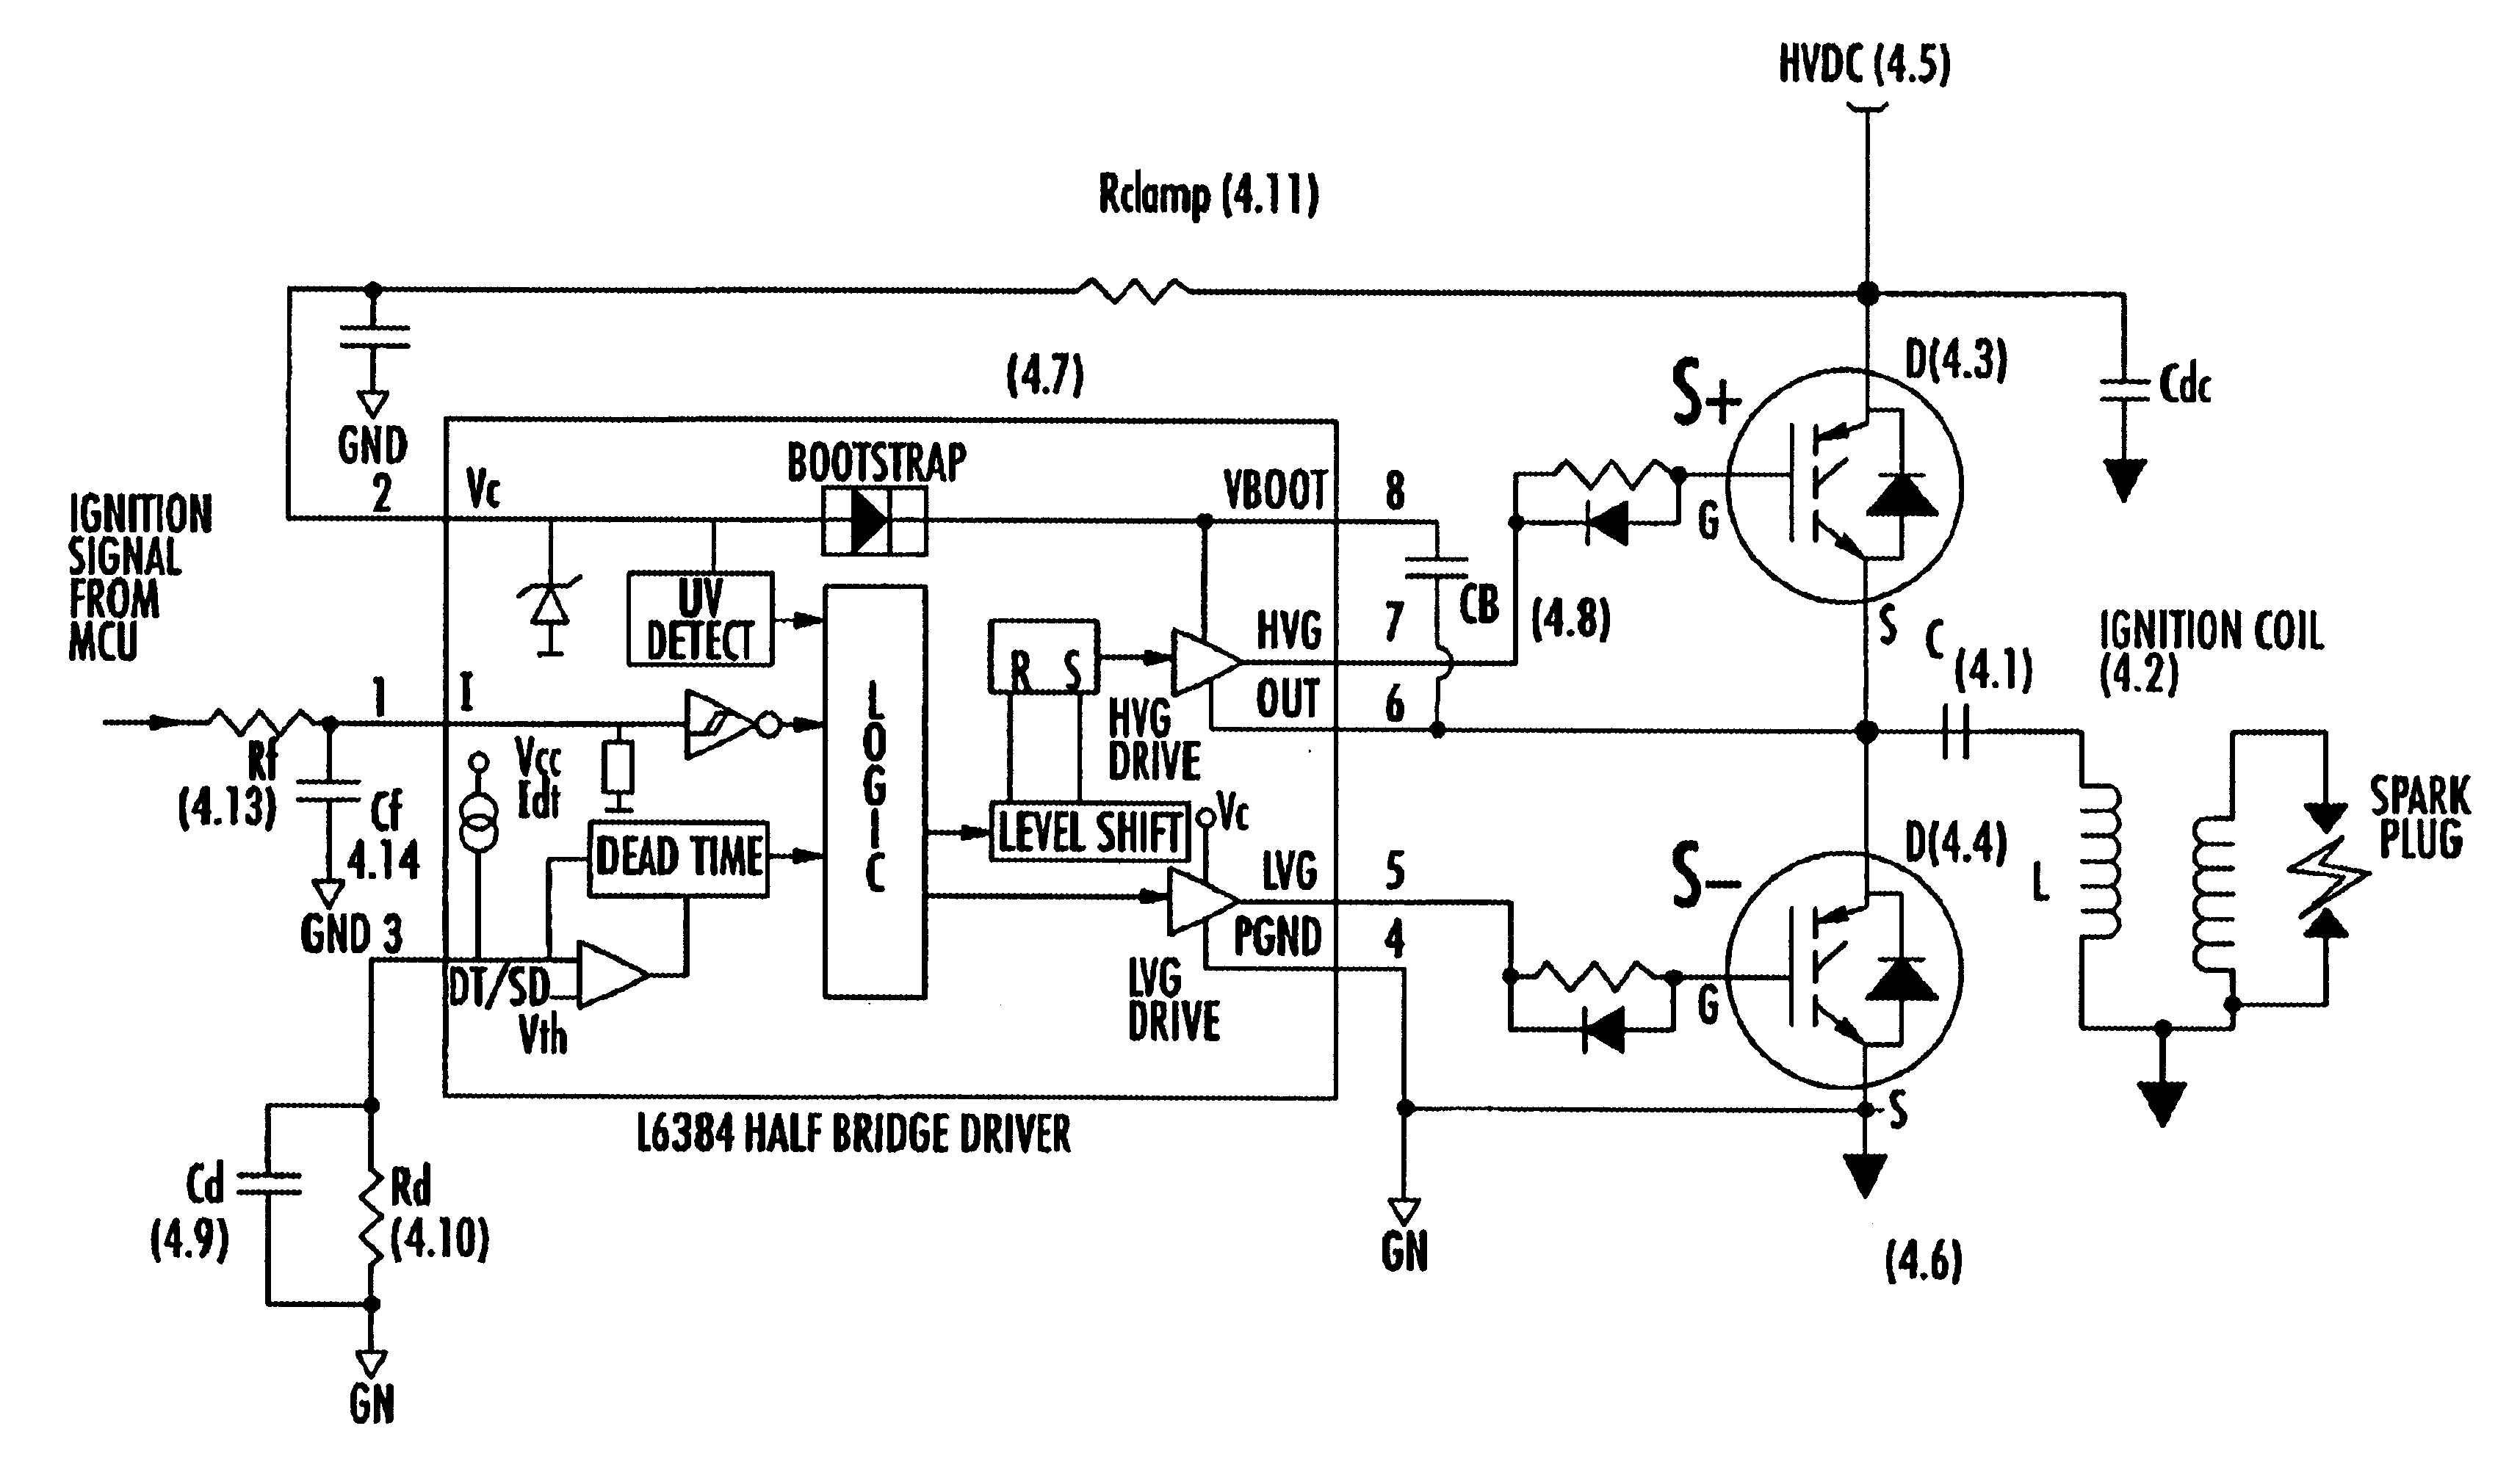 cdi ignition wiring diagram of the spine and vertebrates patent us6662792 capacitor discharge